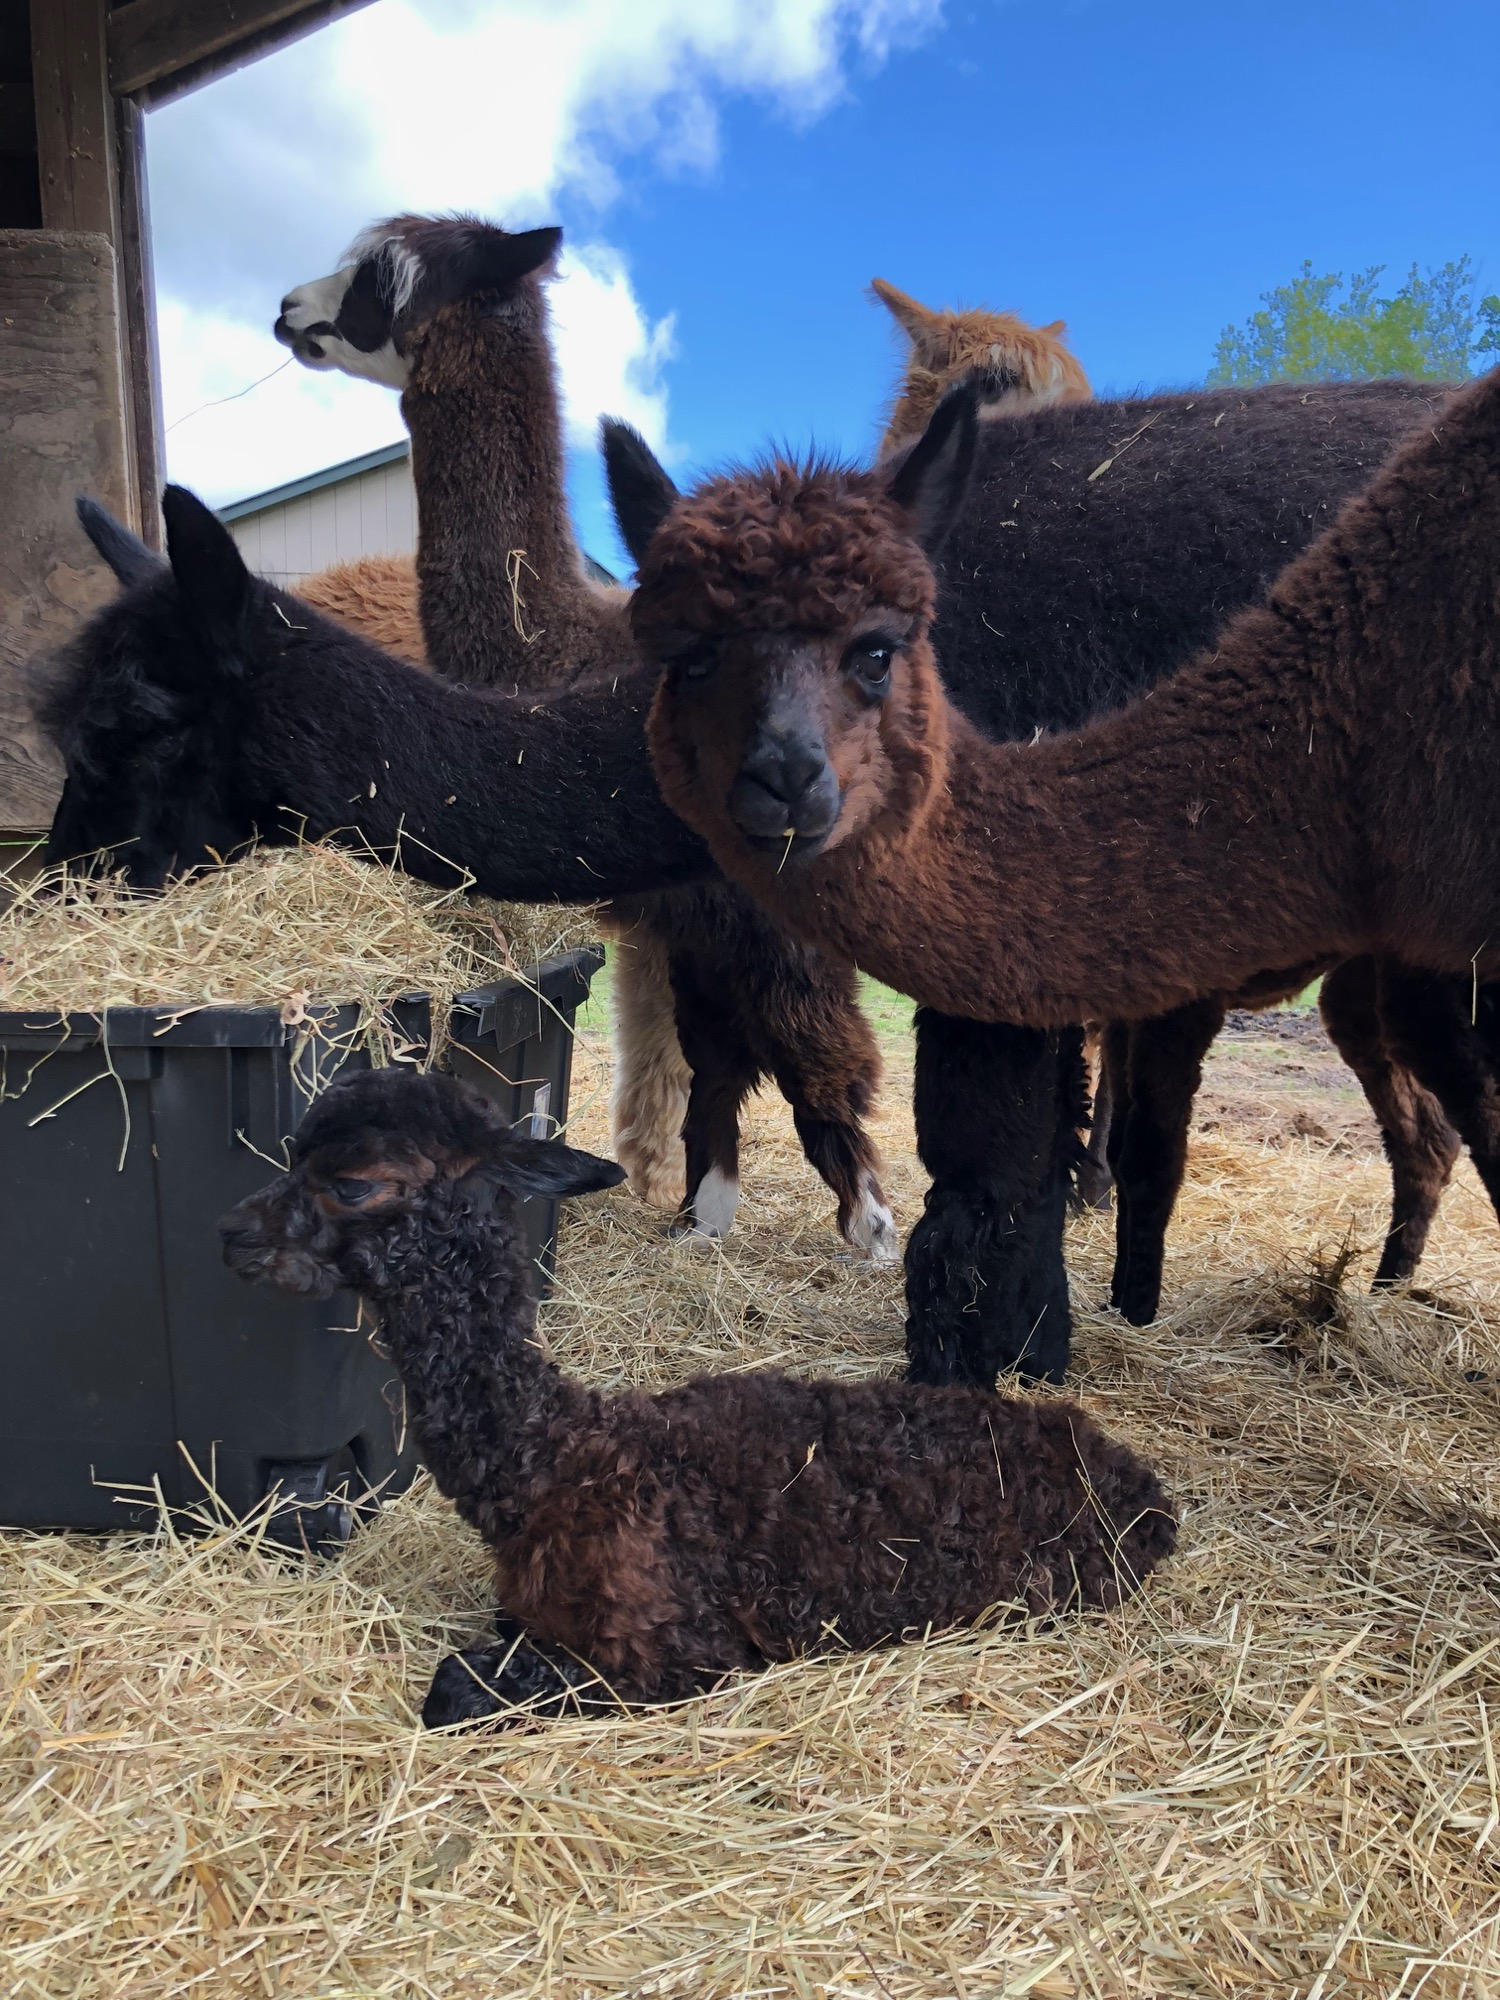 On May 24, Romeo was born! Ballet is his proud mother.